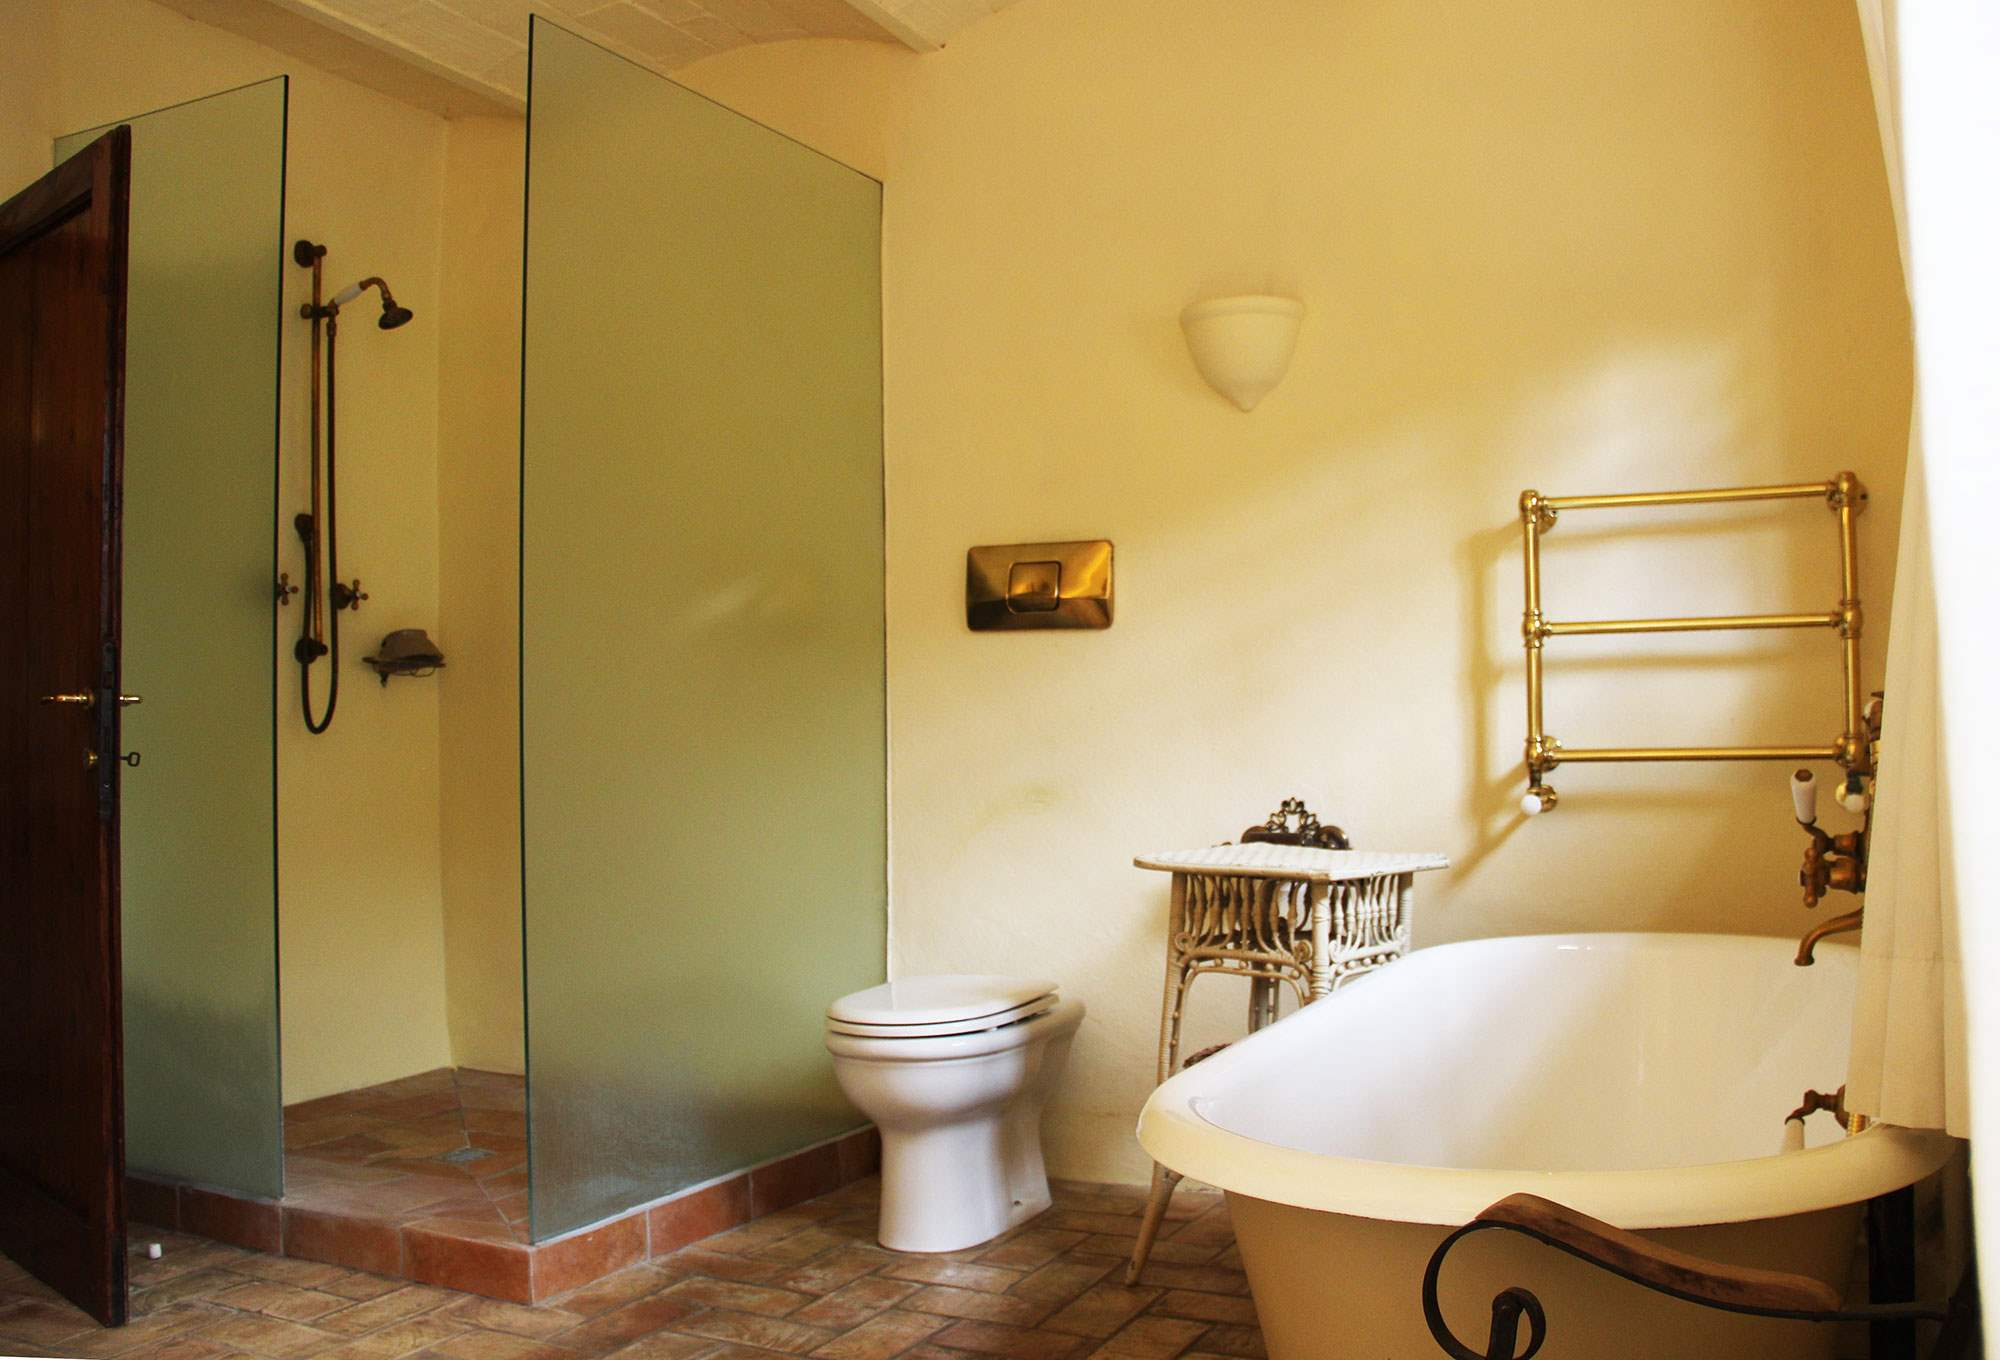 Villa Giacinto, 6 Bedroom rate, 6 bedroom villa in Chianti & Countryside, Tuscany Photo #20